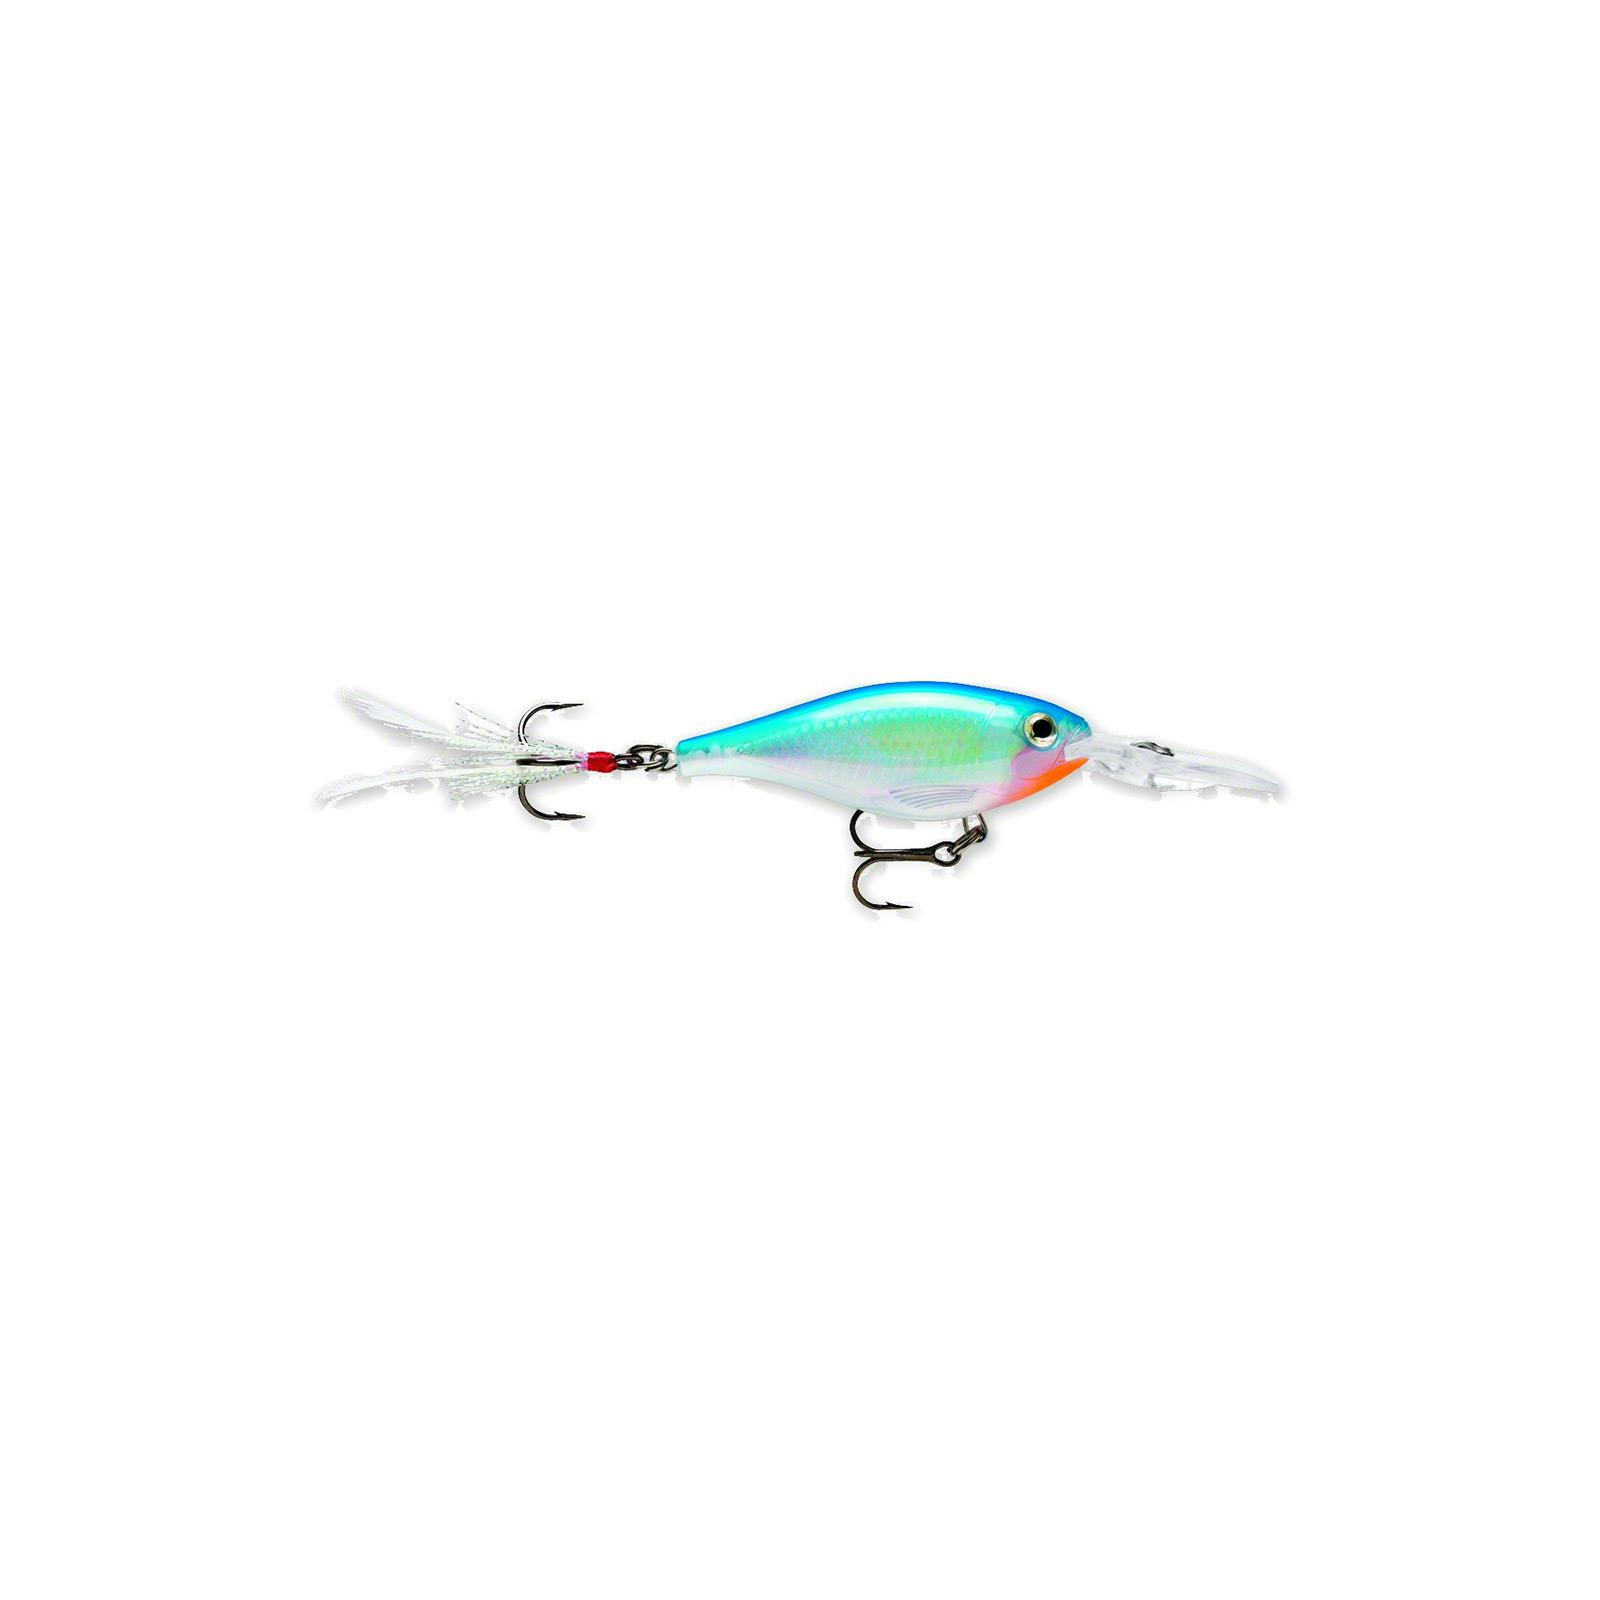 Rapala X-Rap Subwalk 09 Fishing lure (Silver, Size- 3.5) Multi-Colored by Rapala